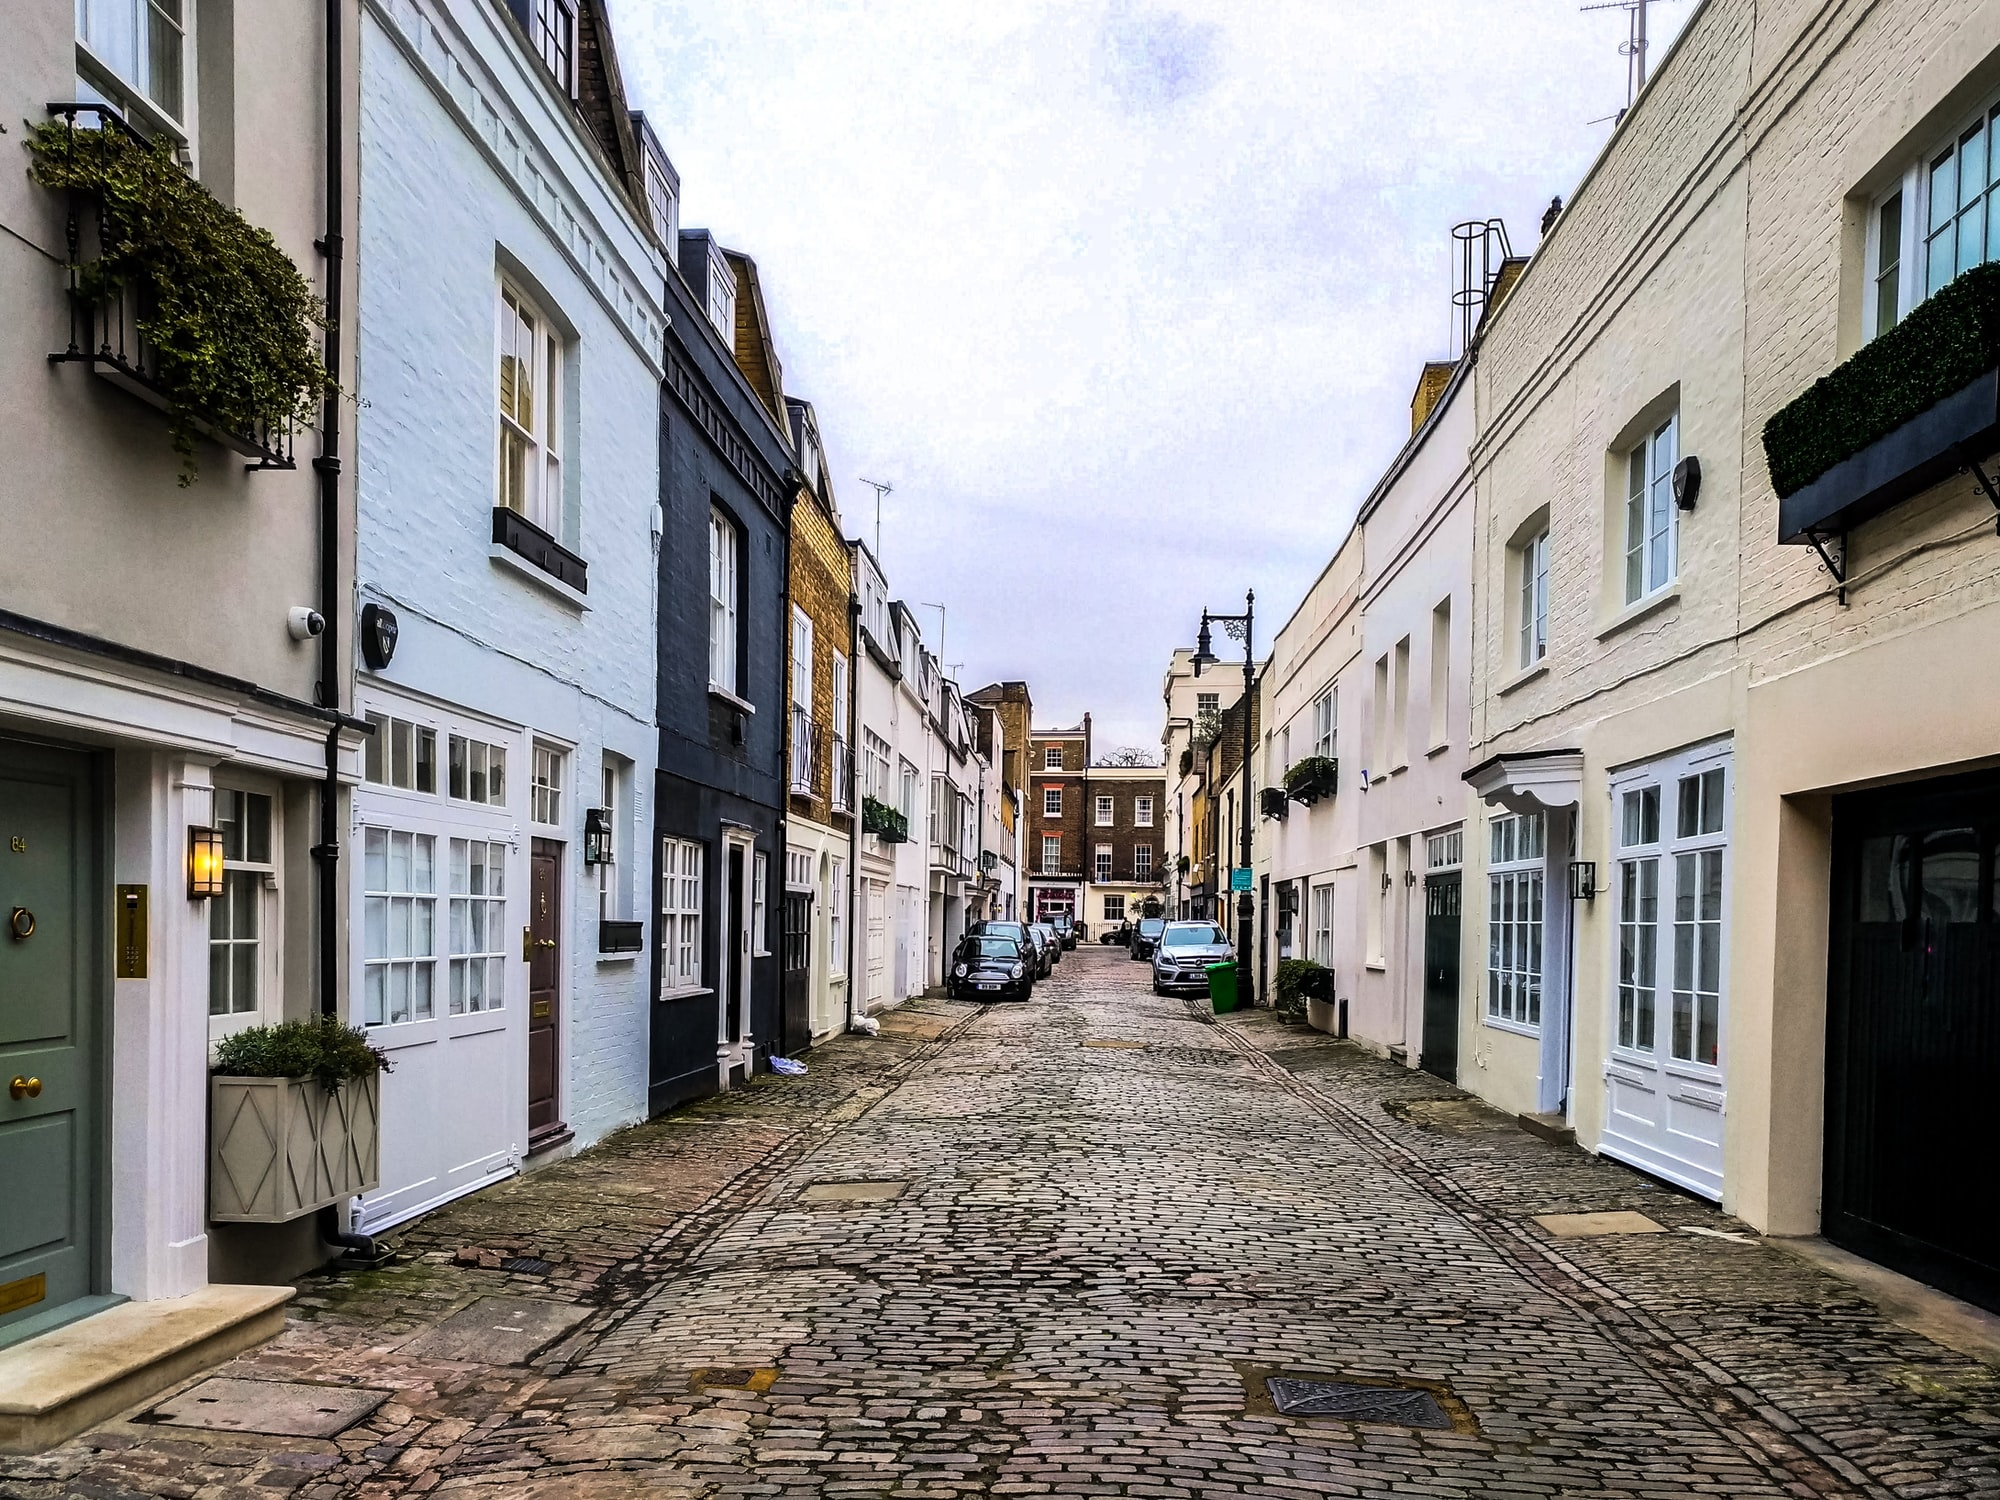 Most streets in London look like this. And I love them!